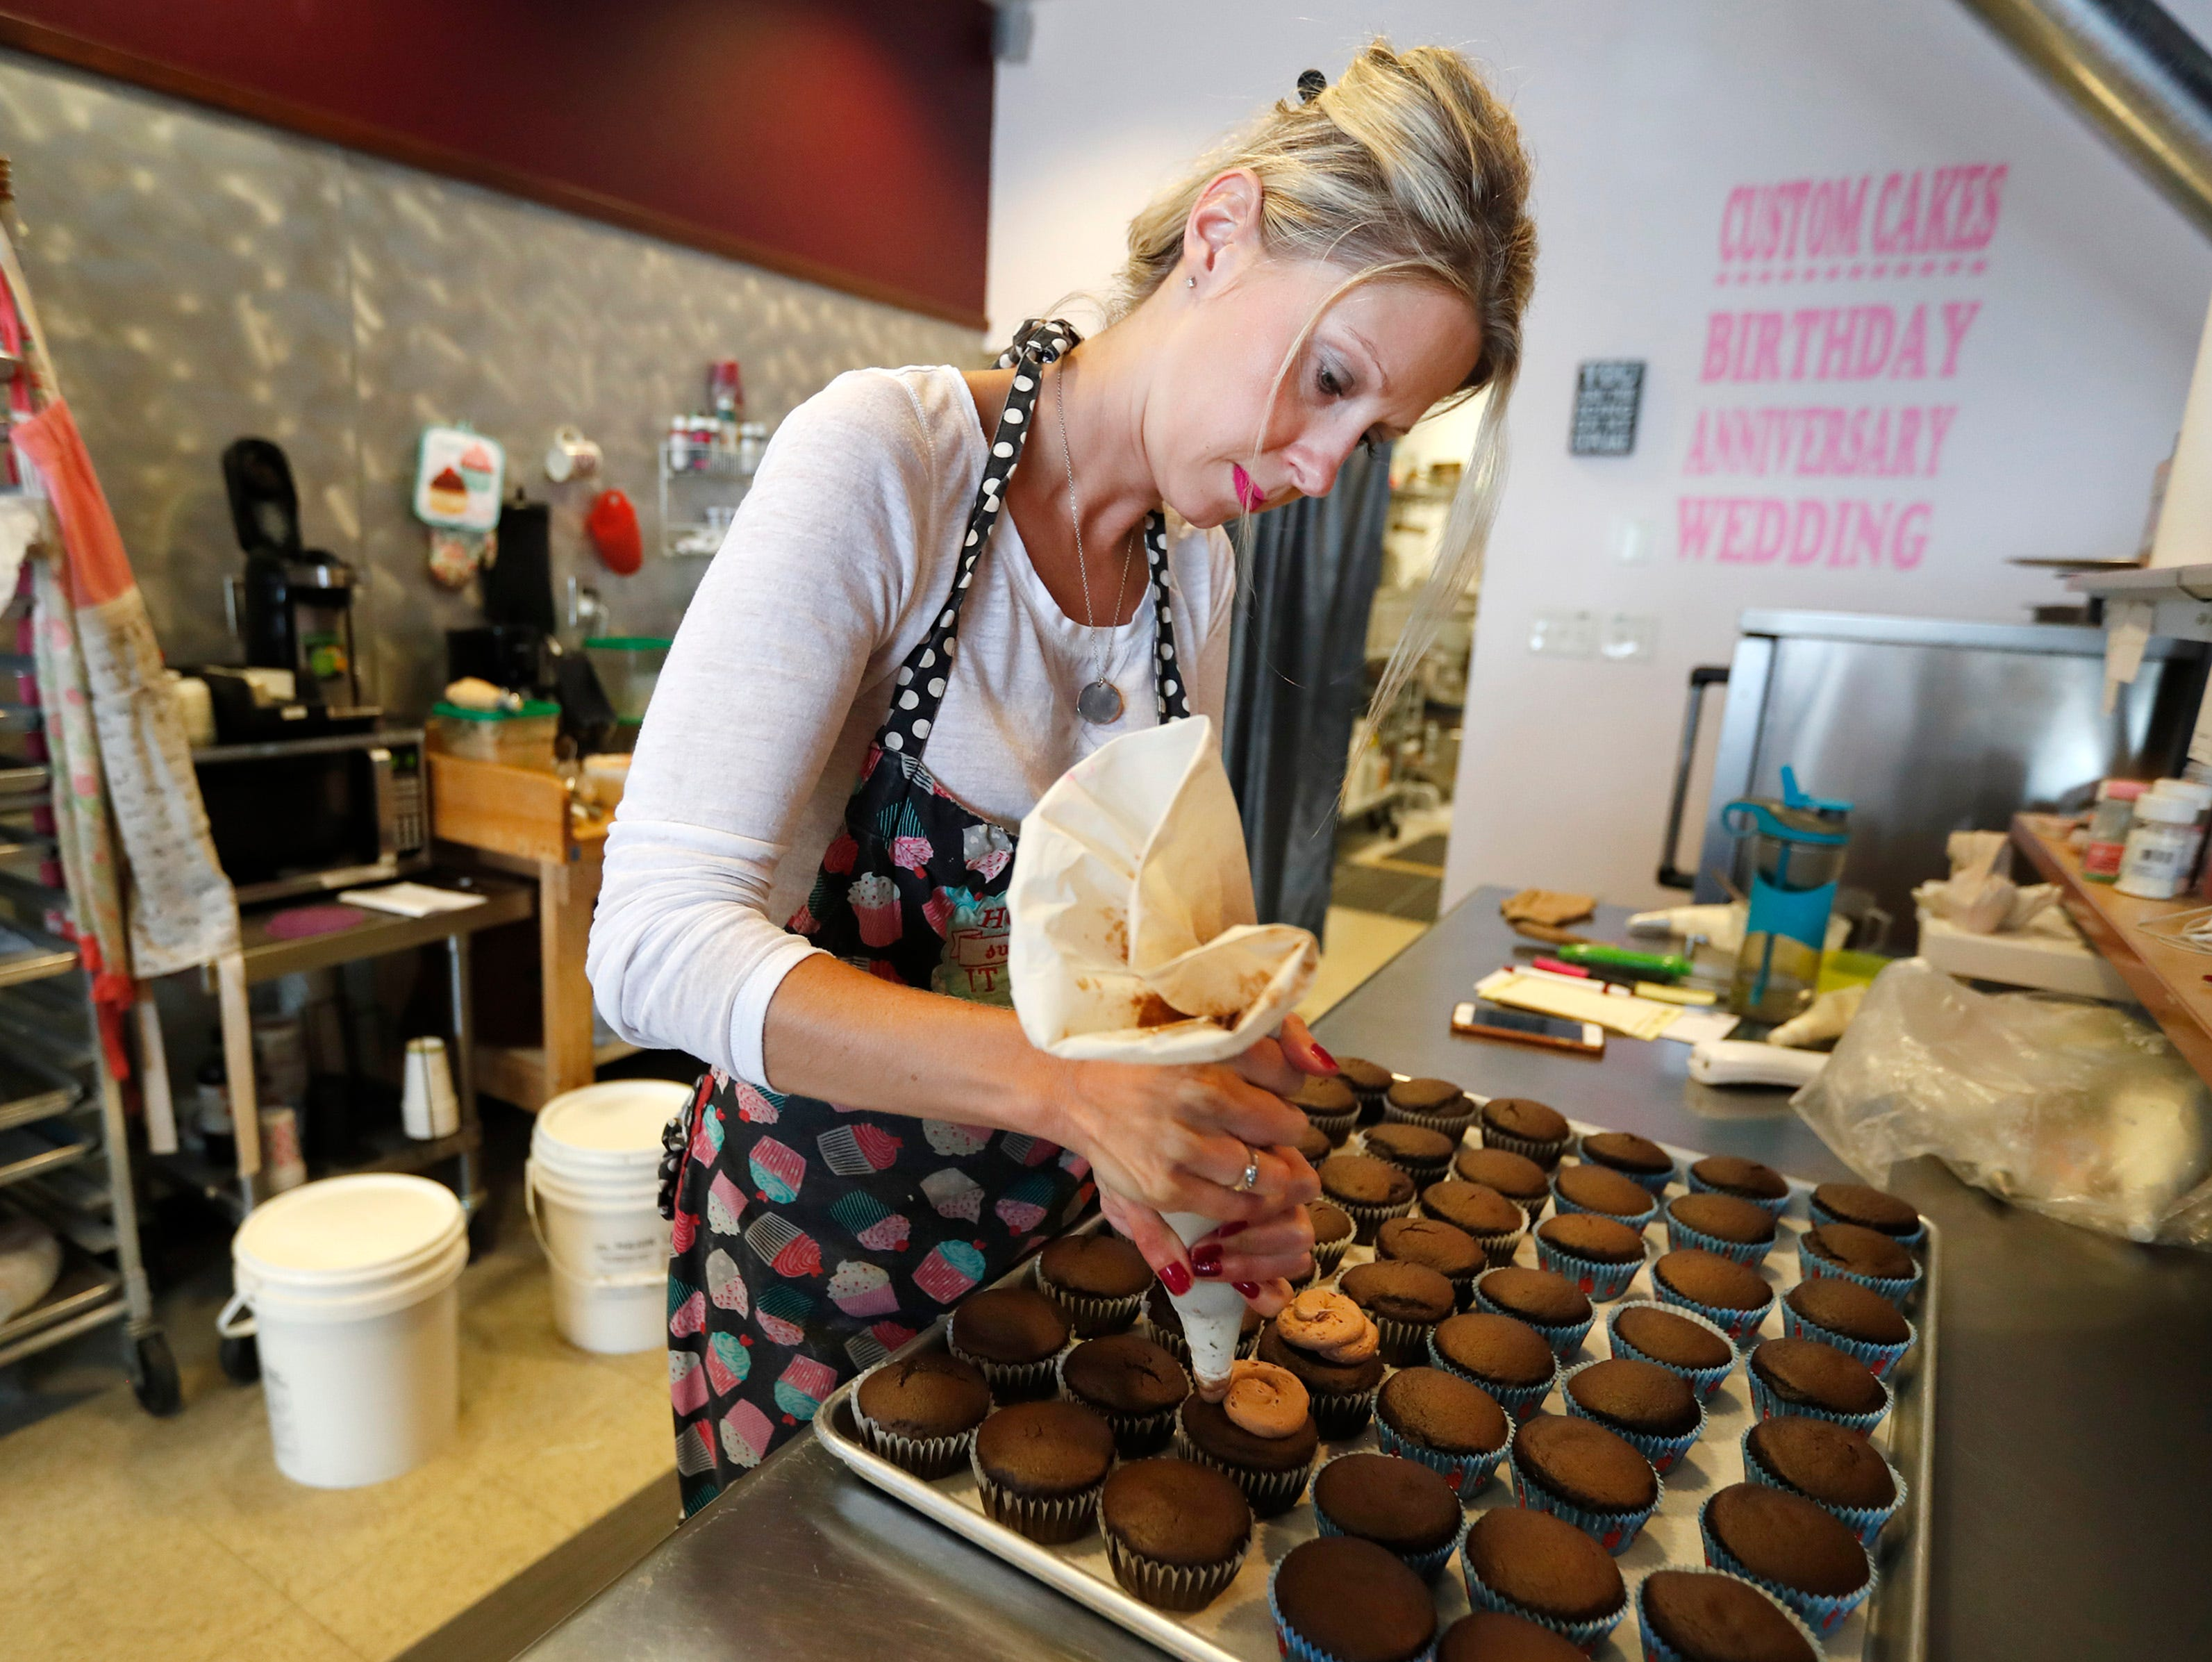 Rebecca Henry, owner of Rebecca's Sweets Boutique, frosts cupcakes that will be given away for free while supplies last on Friday May 10 as a promotion for Facebook's reveal of their new birthday stories Thursday, May 9, 2019, in Appleton, Wis. One bakery from each state was selected as part of the promotion.